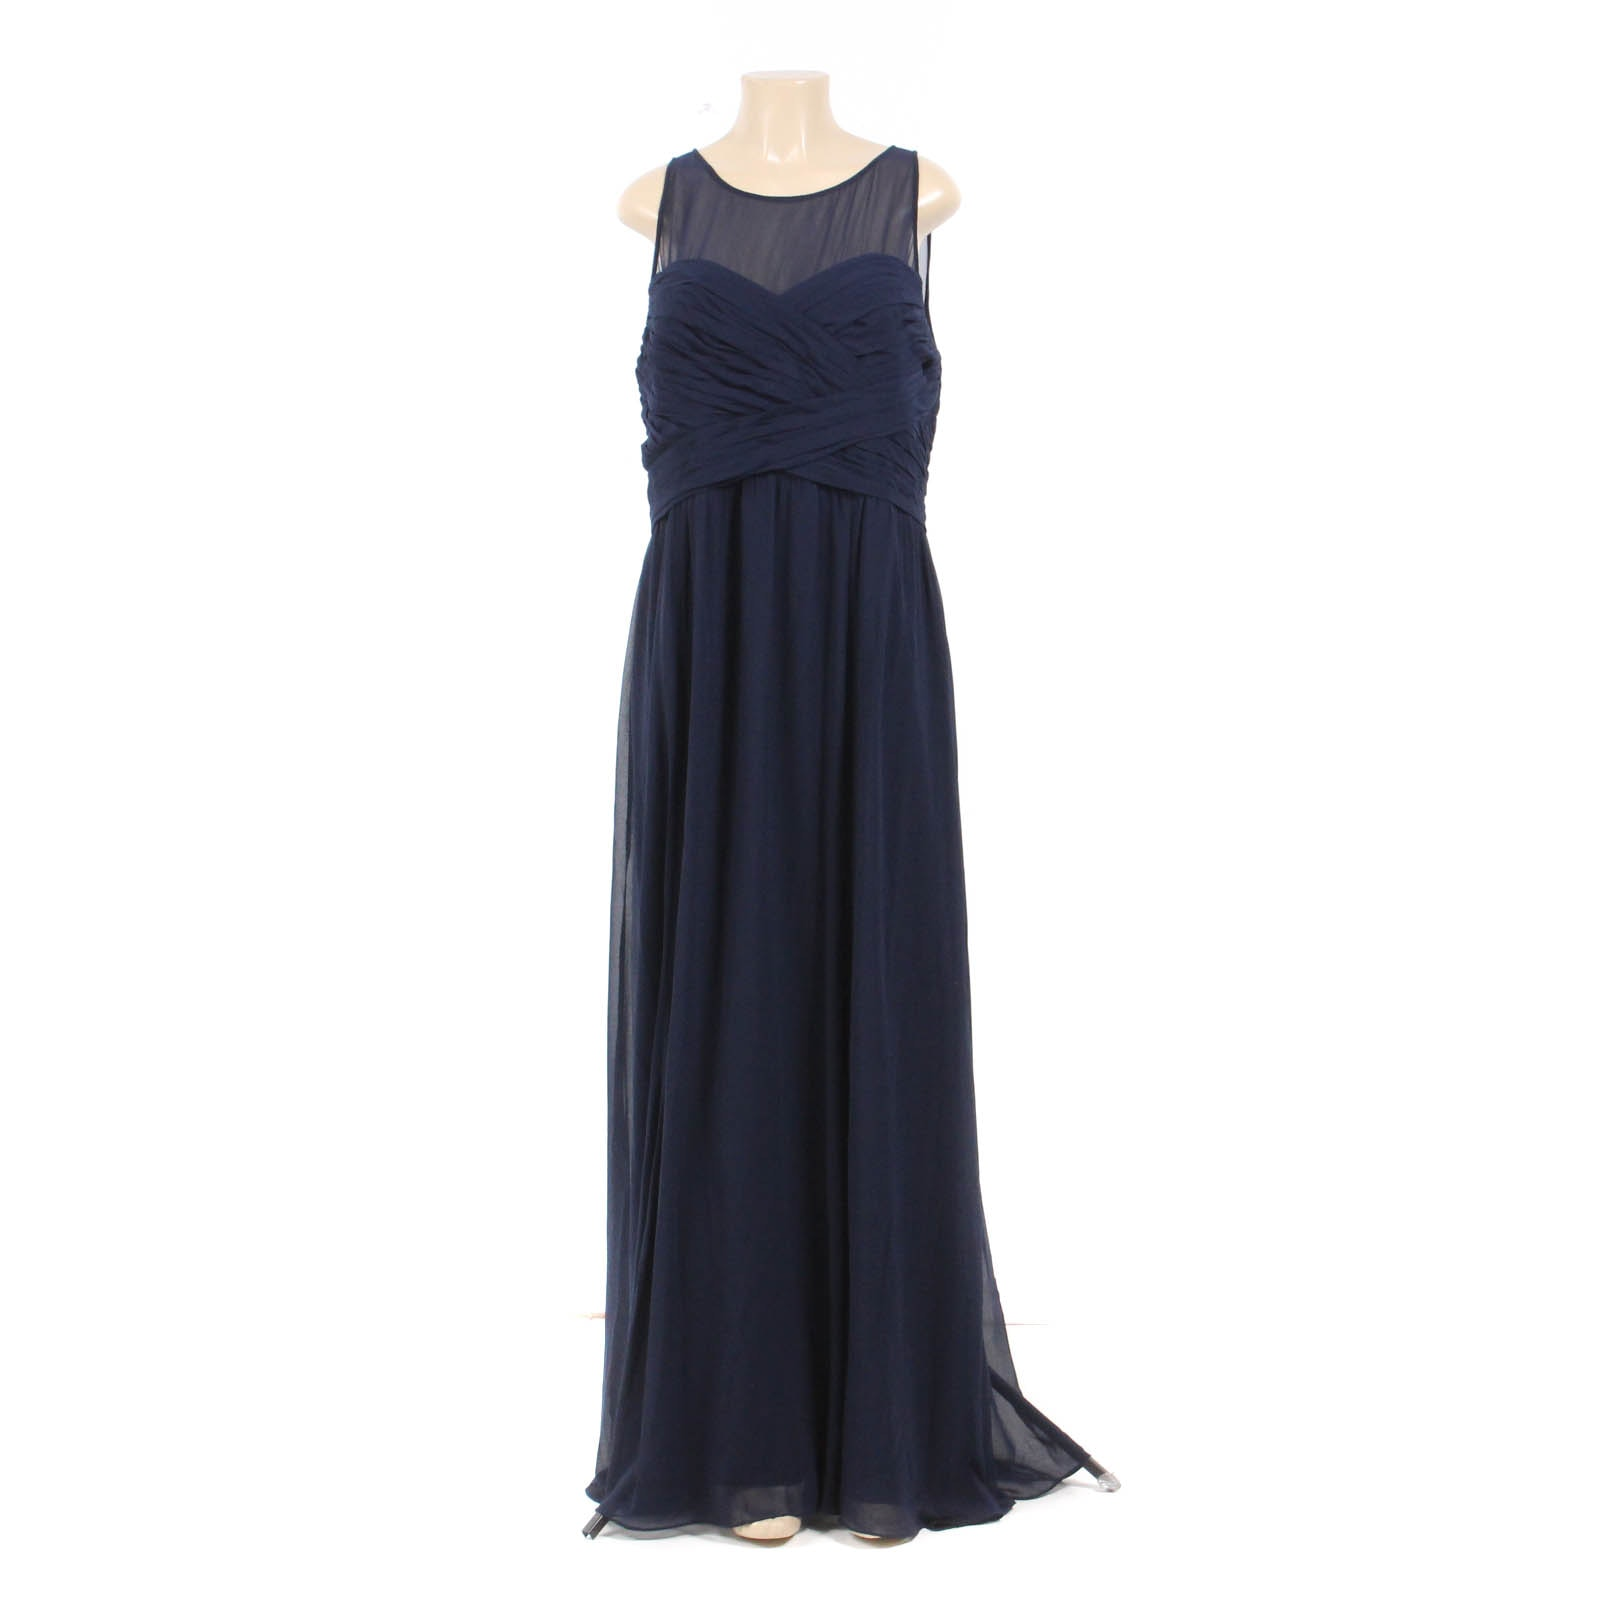 Lauren by Ralph Lauren Navy Chiffon Sleeveless Evening Dress